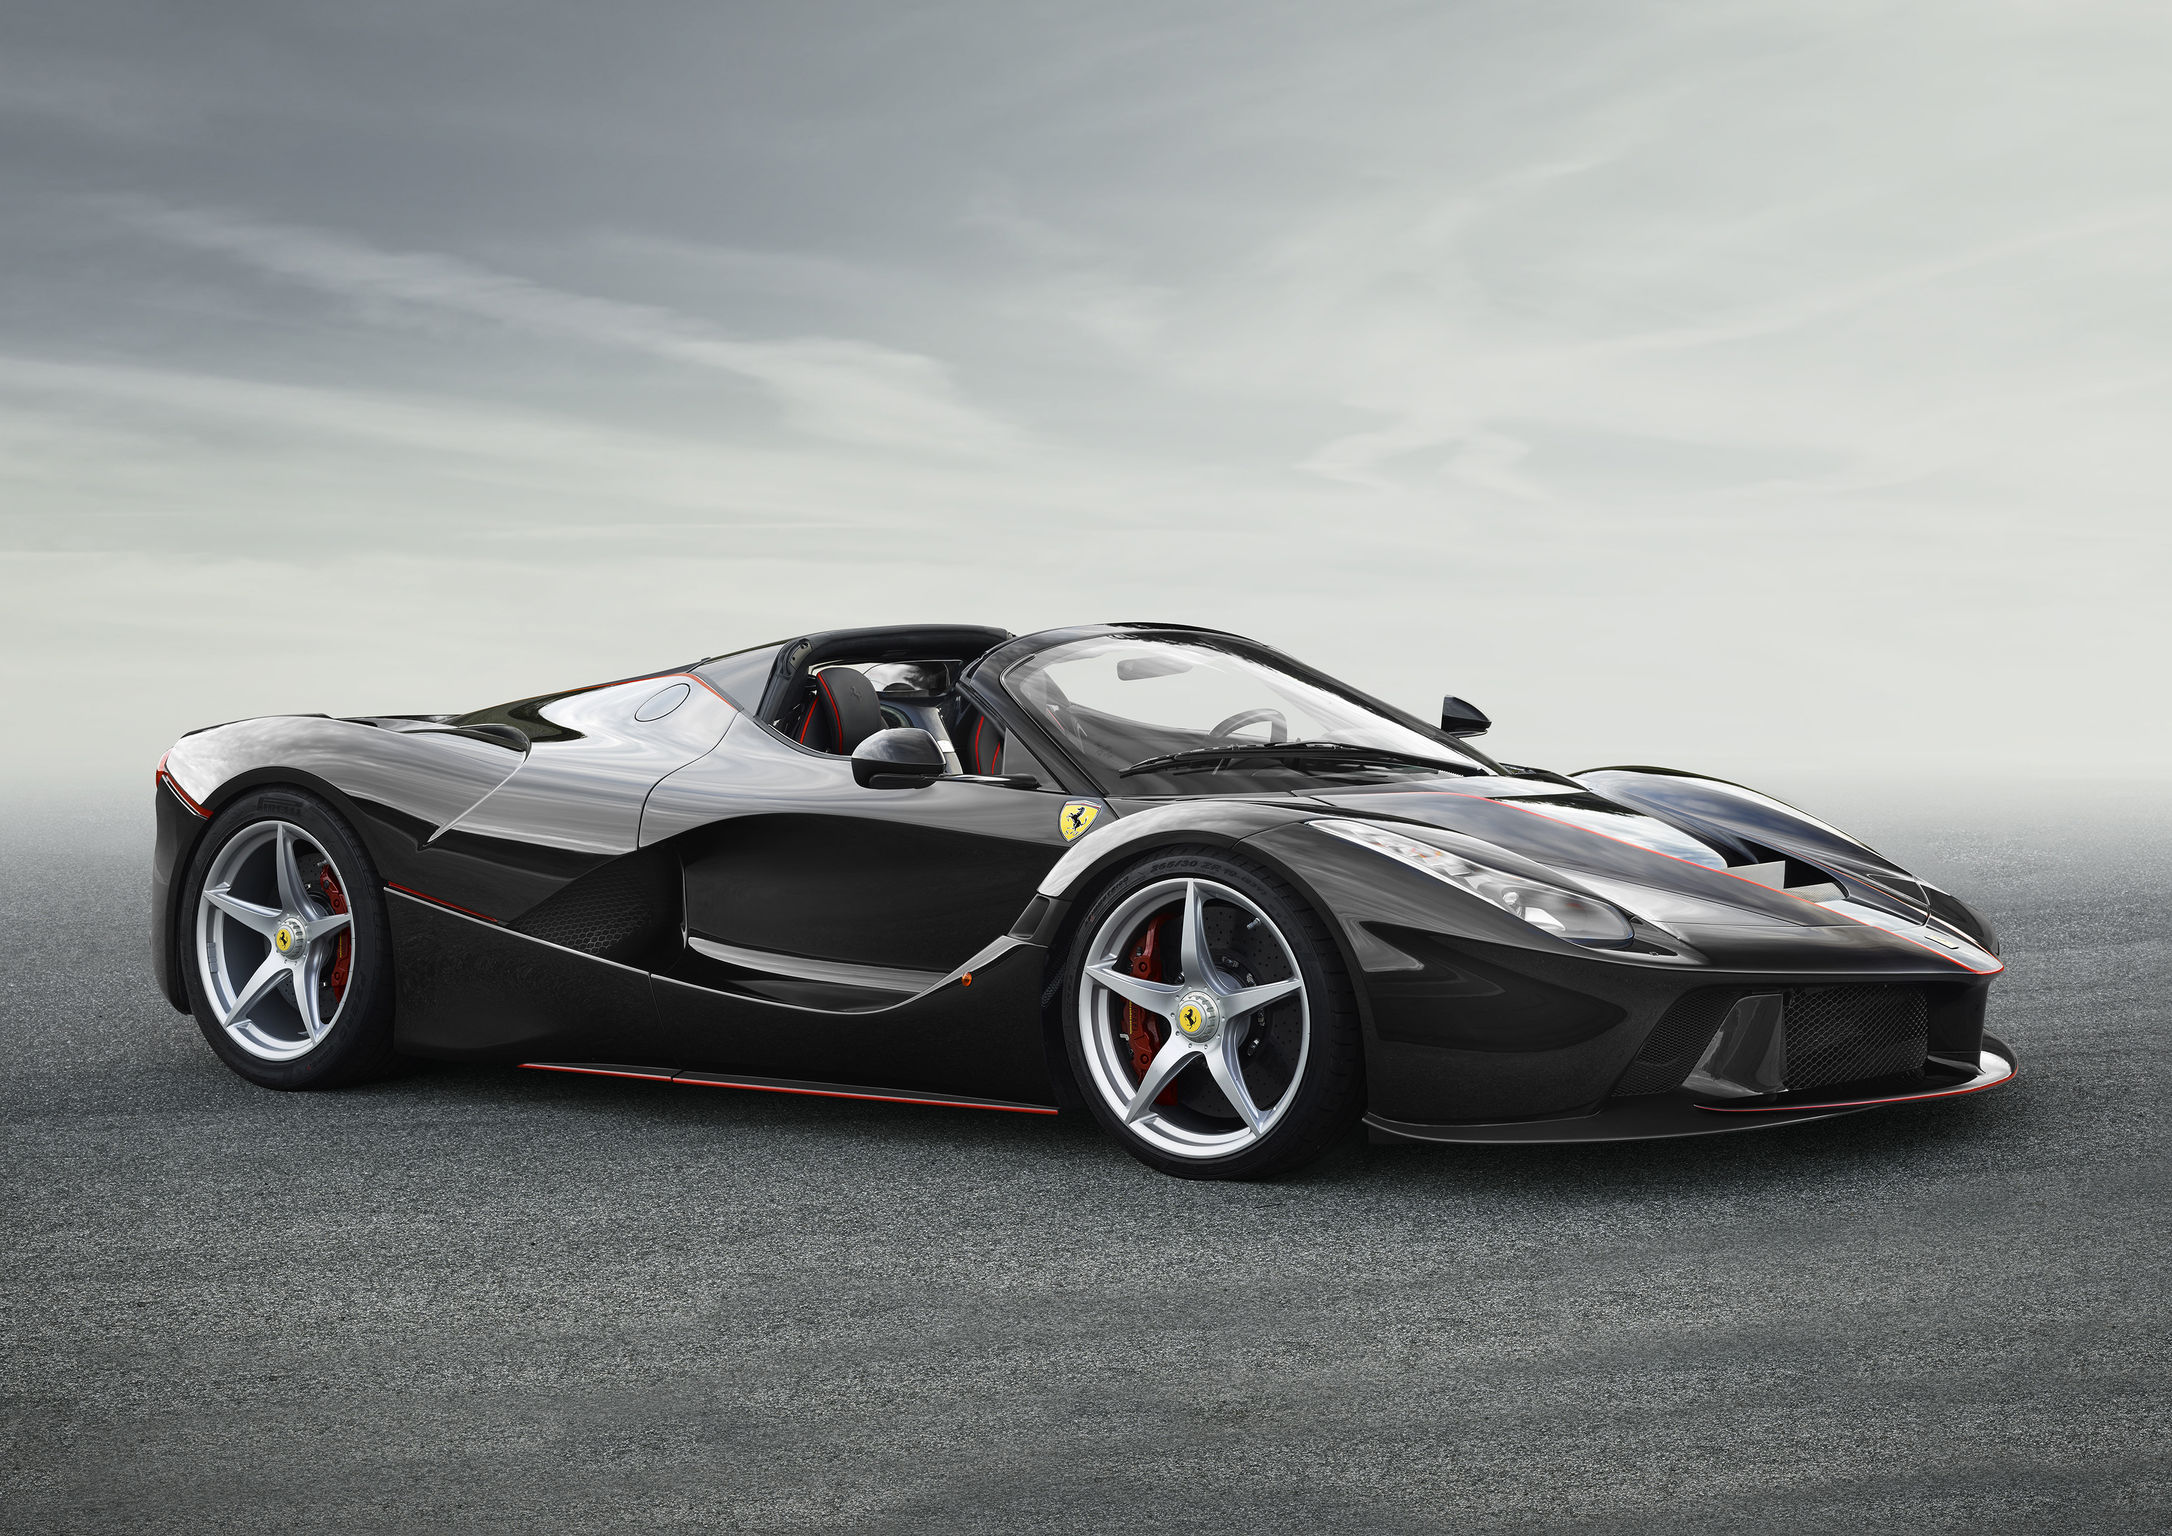 Ferrari Laferrari Aperta If World Design Guide